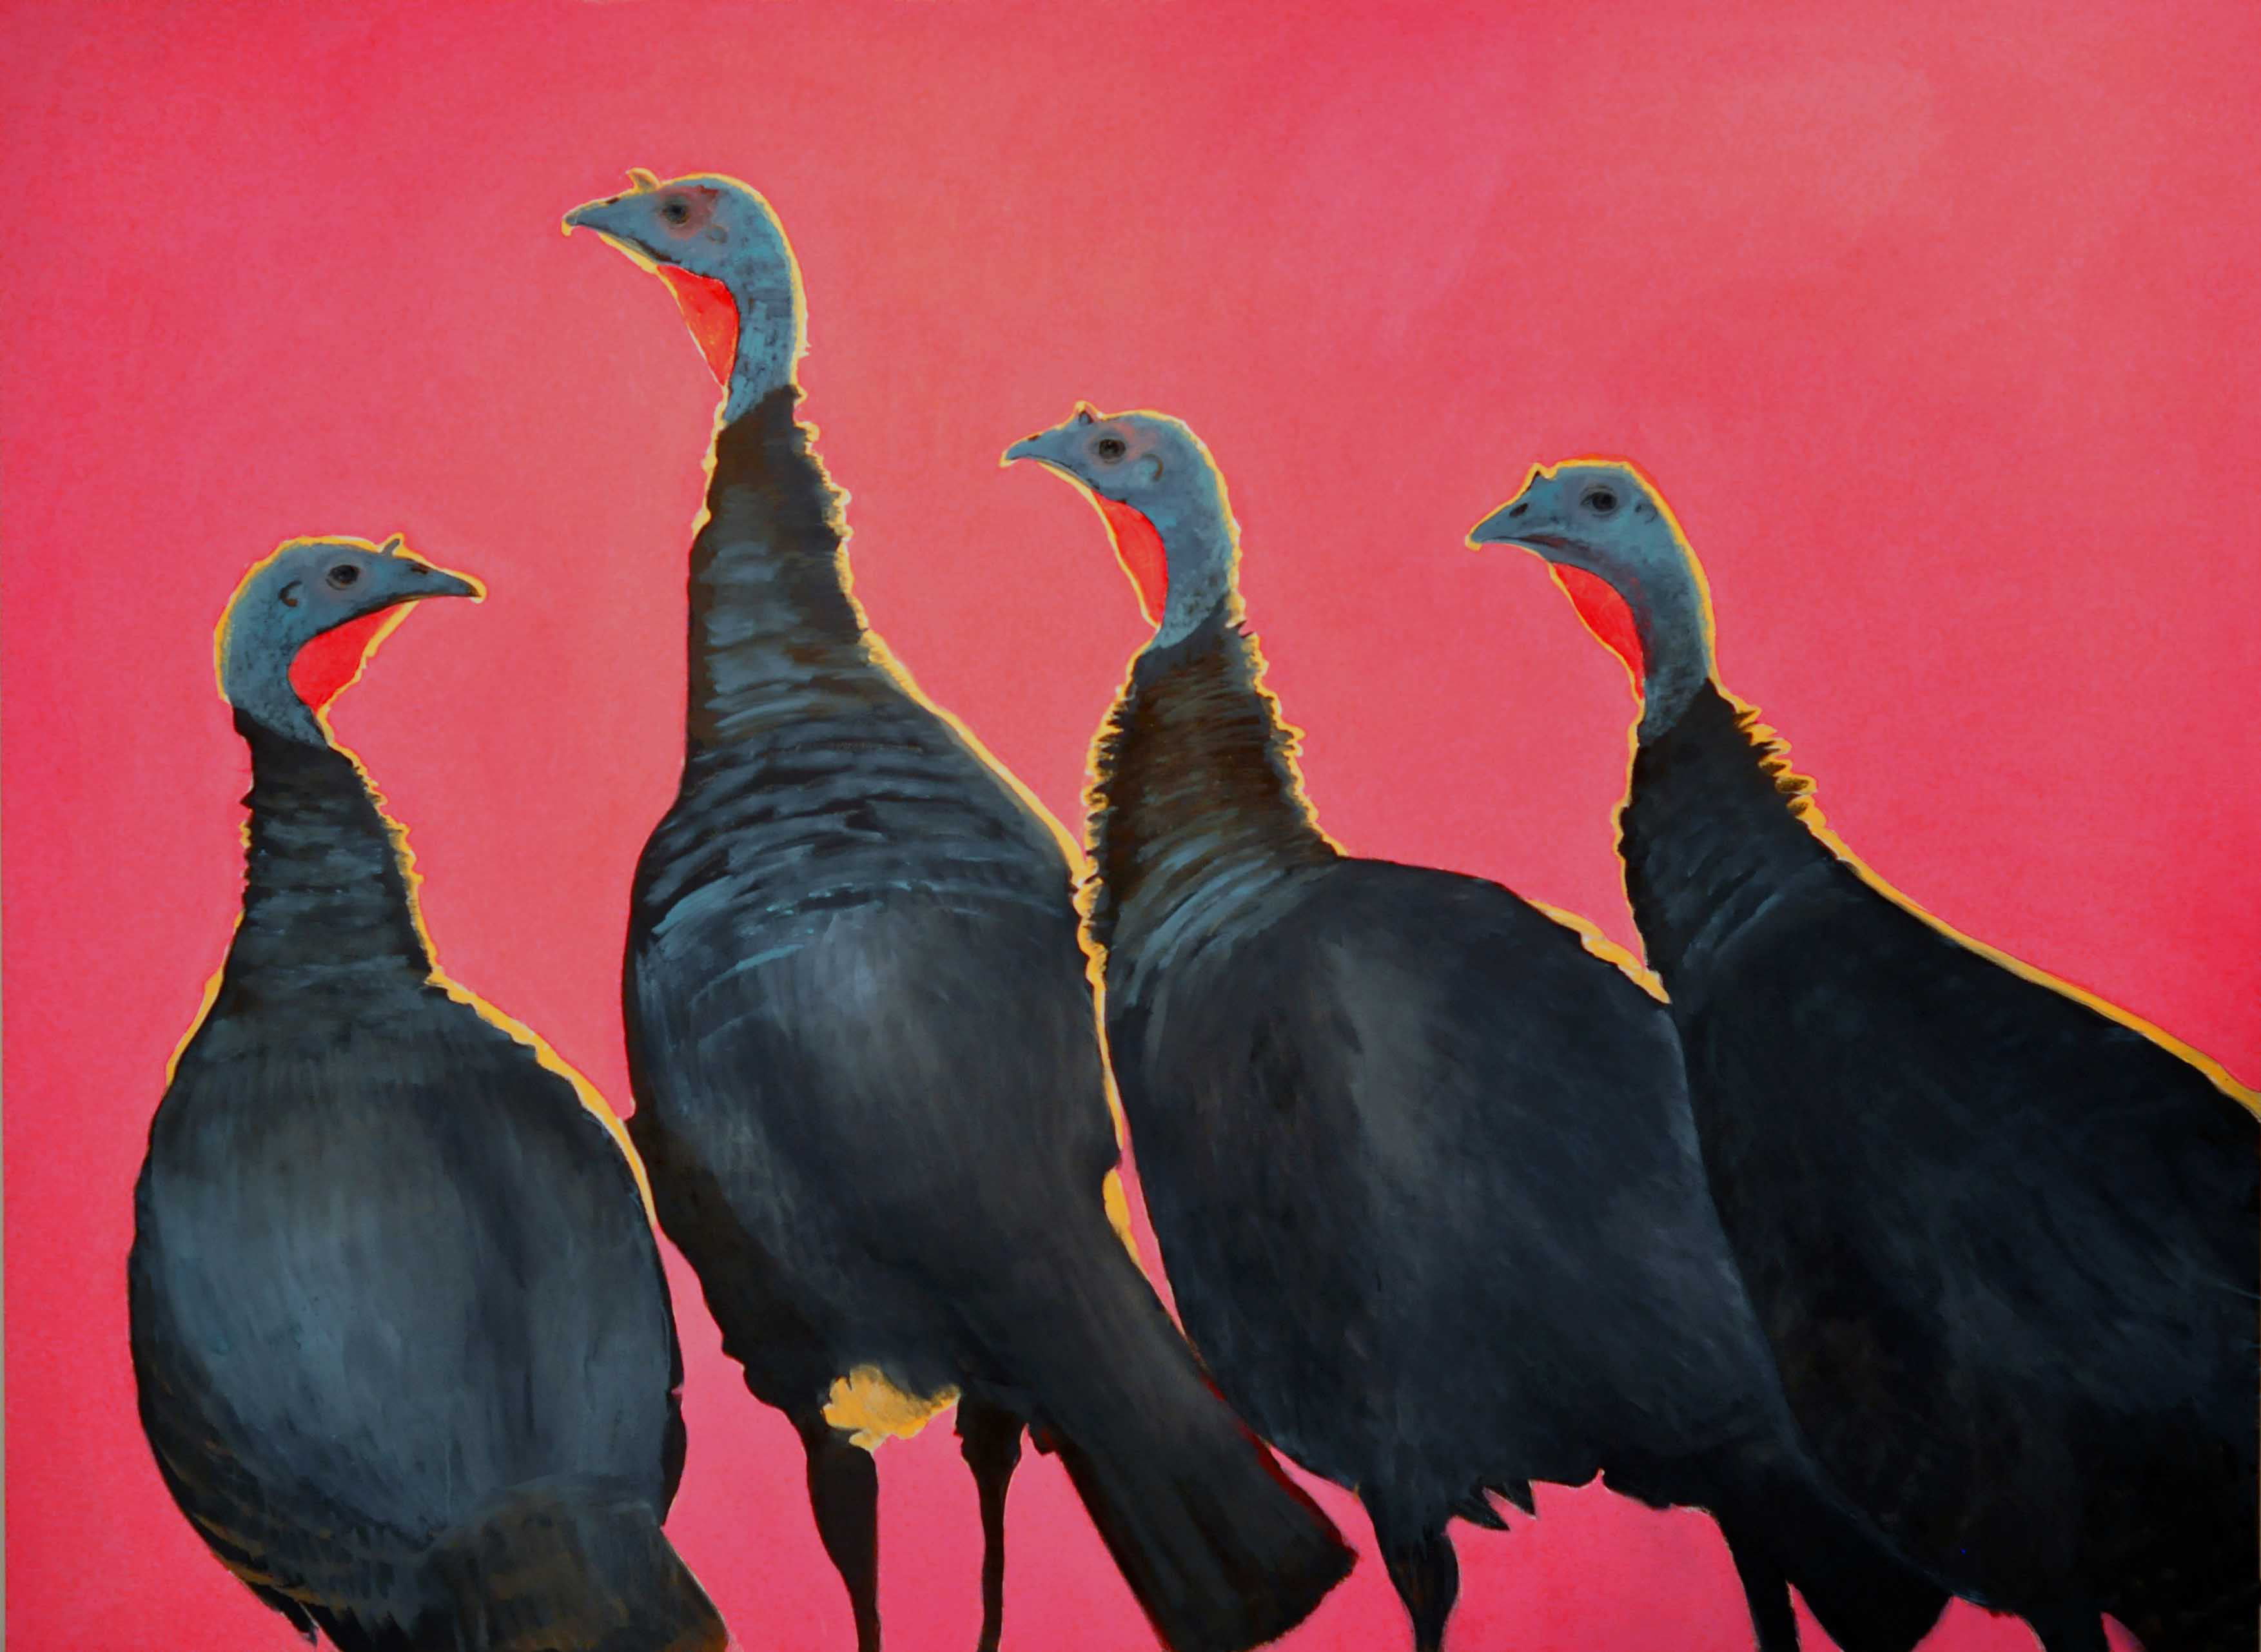 Turkey-Hens-2-66x90-oil-on-canvas,-2014web_edited-1